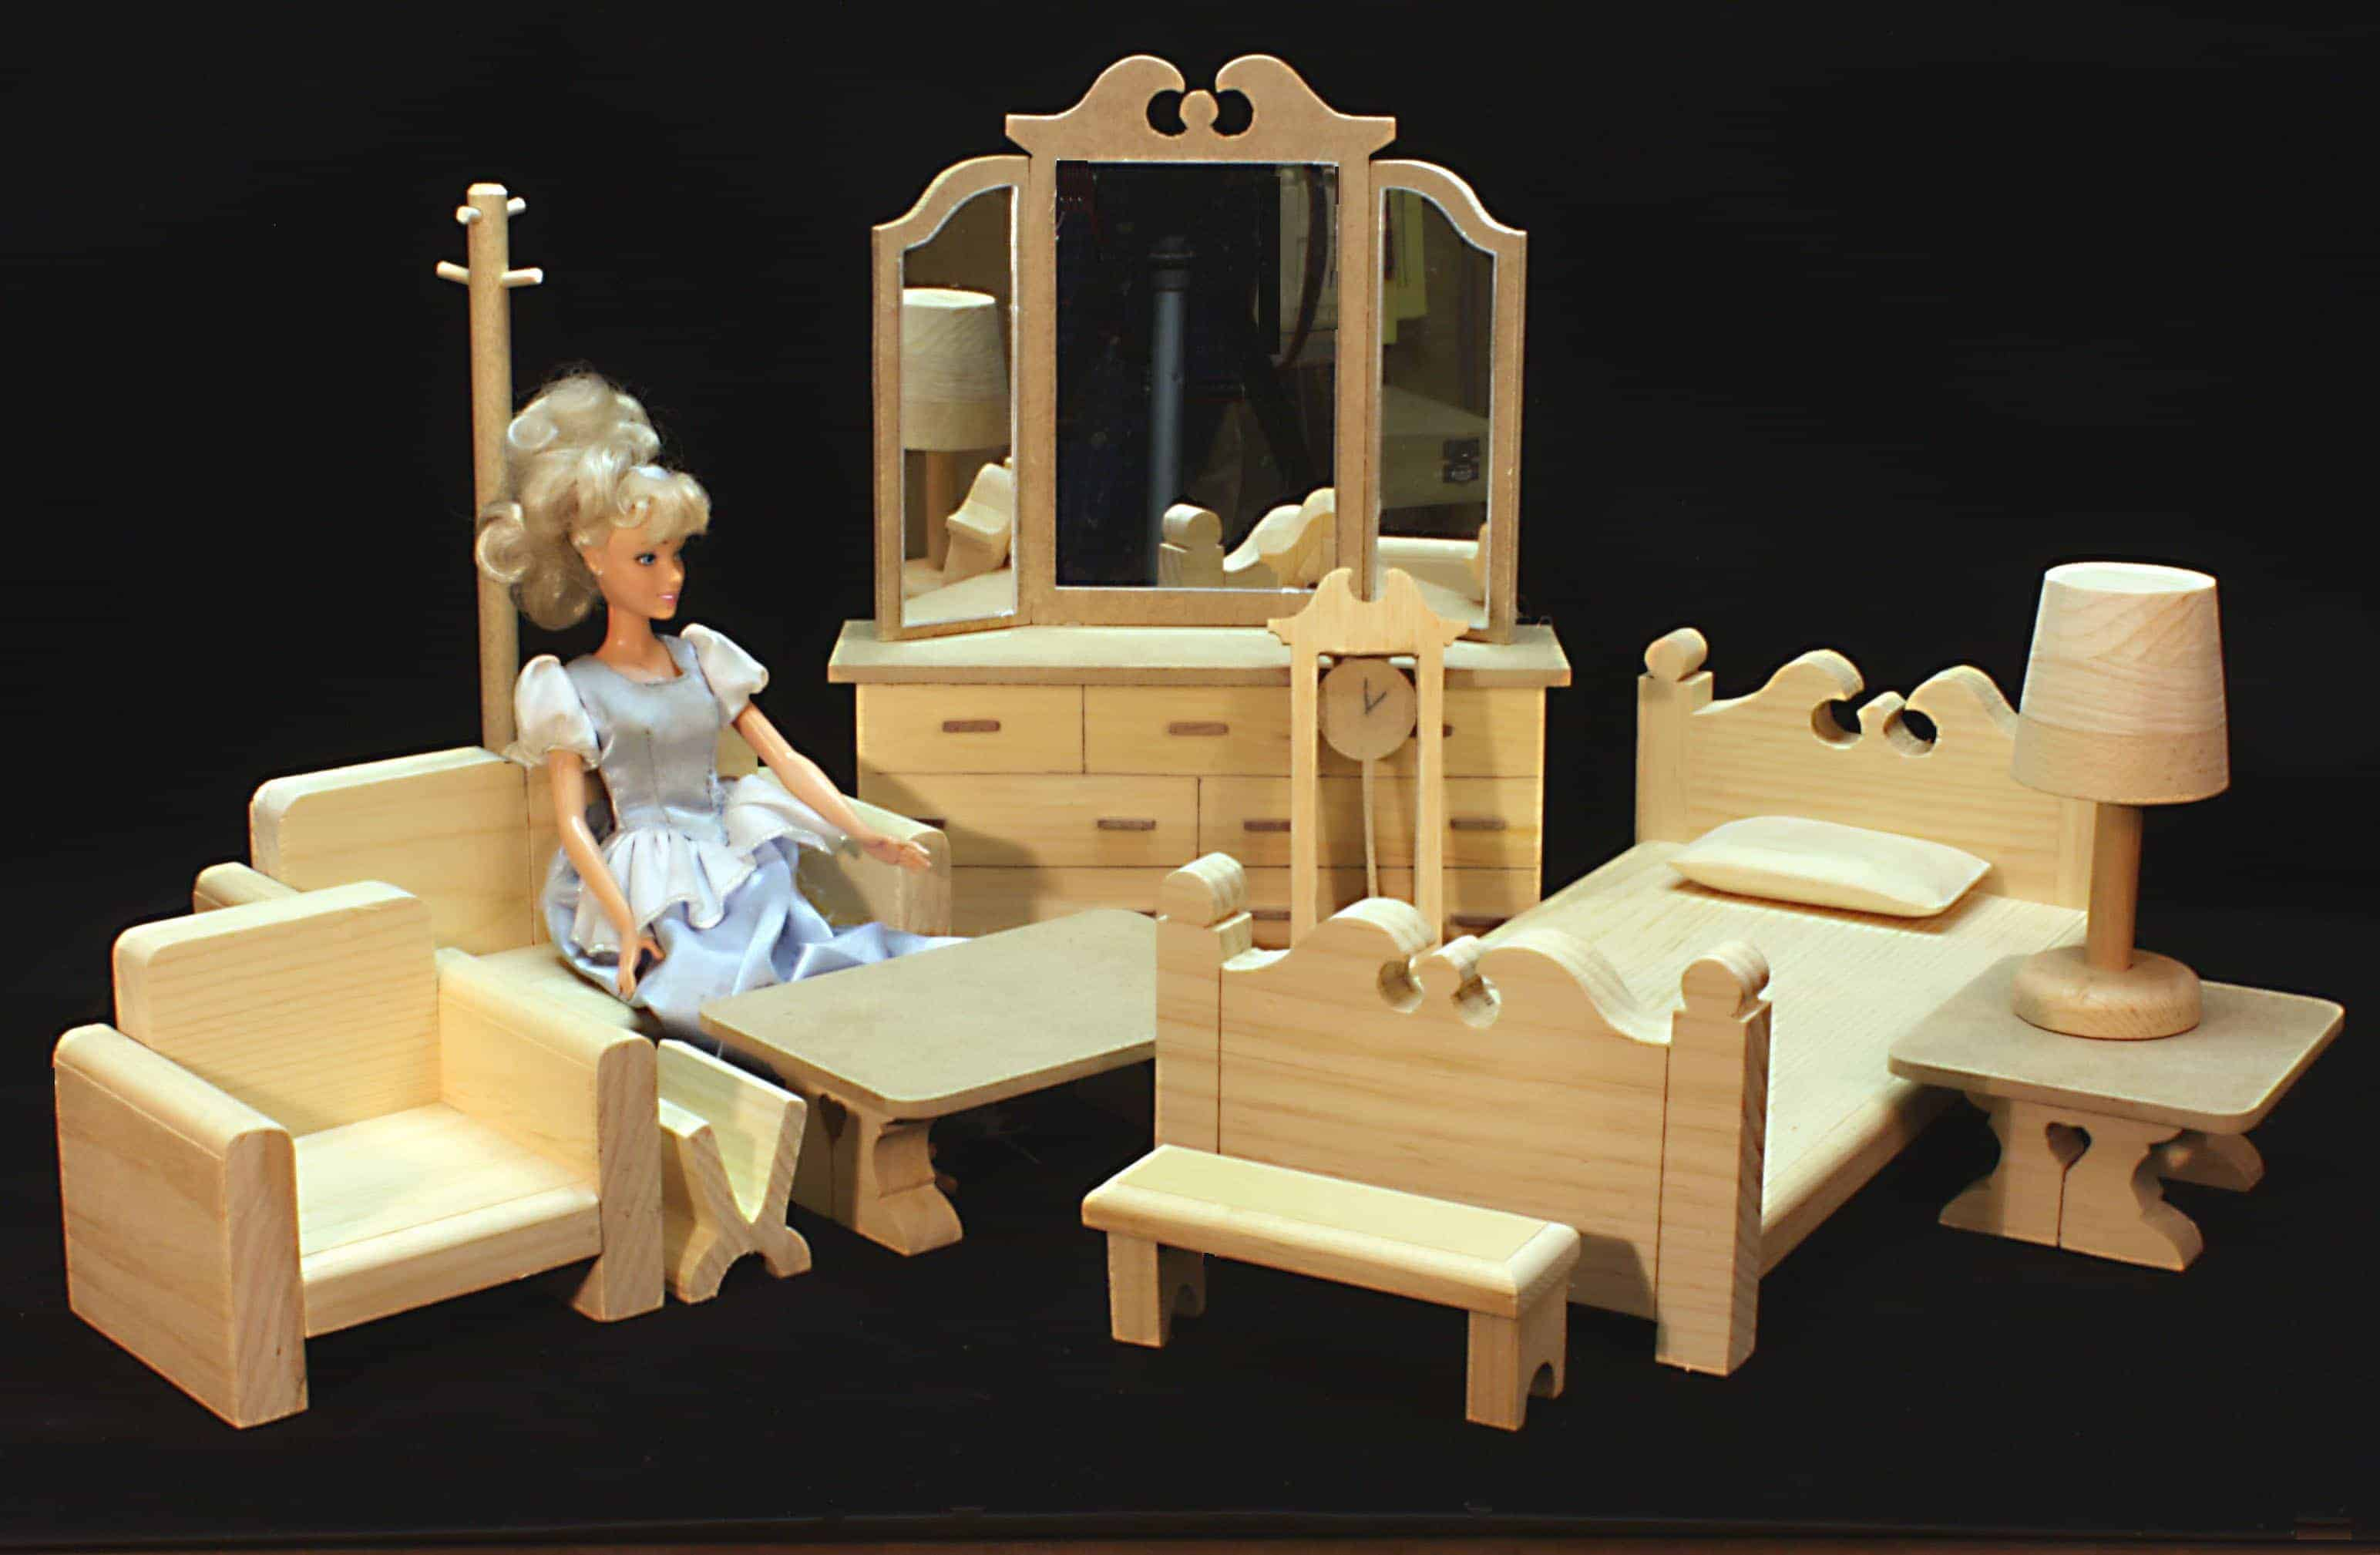 Two room barbie house furniture woodworking plans for Furniture house